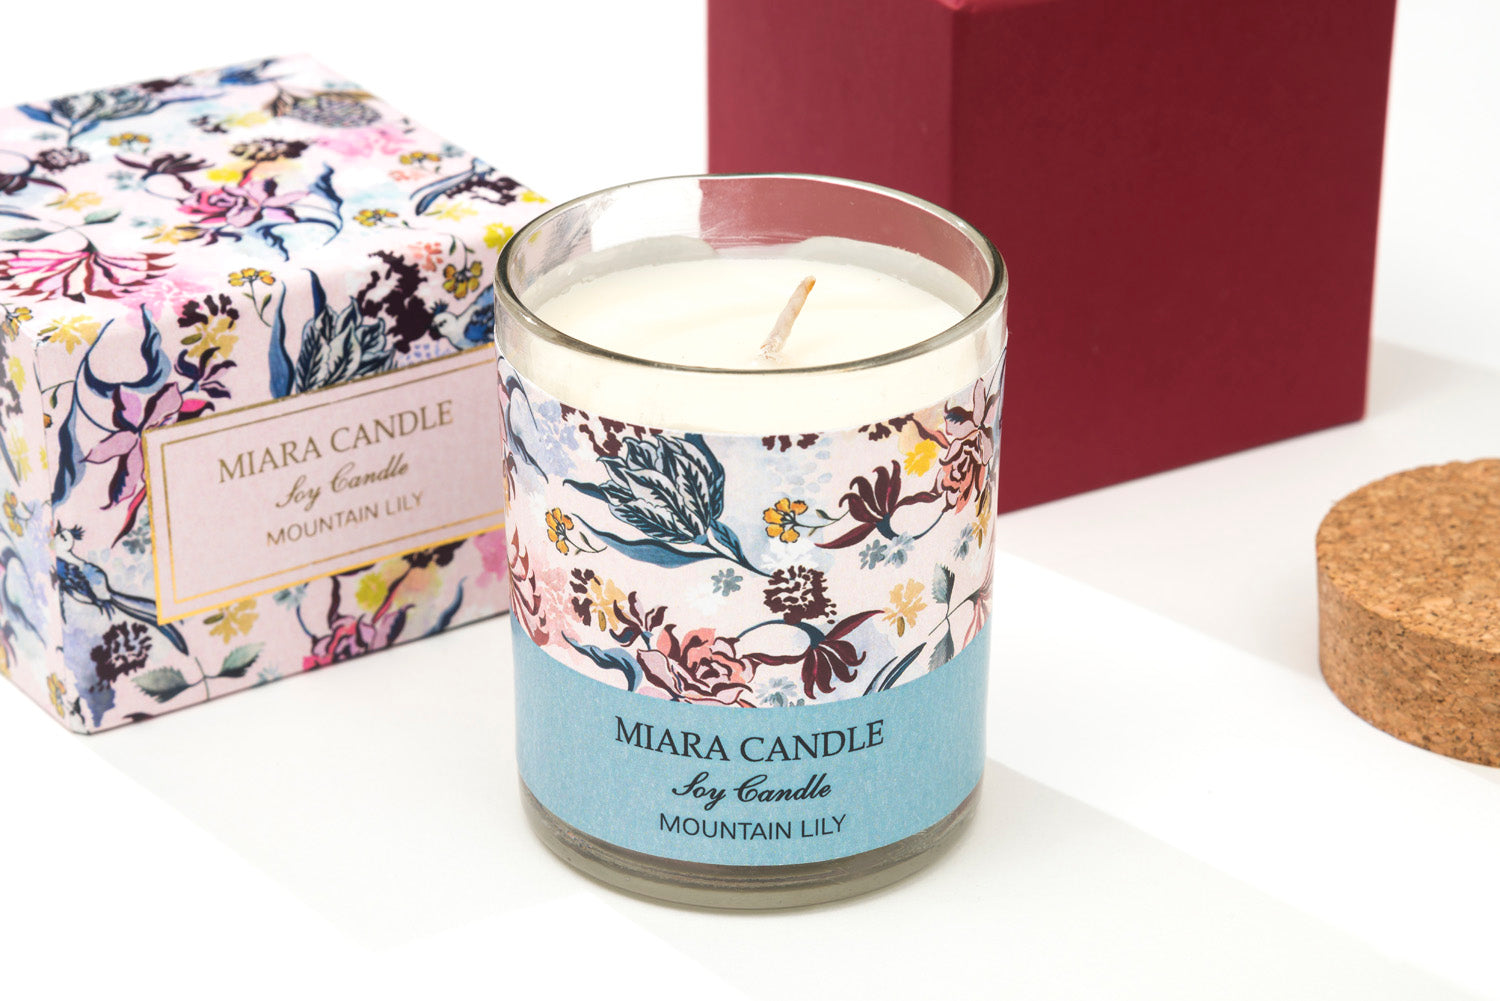 Gifts of Love Miara Candle Classic 3x3 Mountain Lily